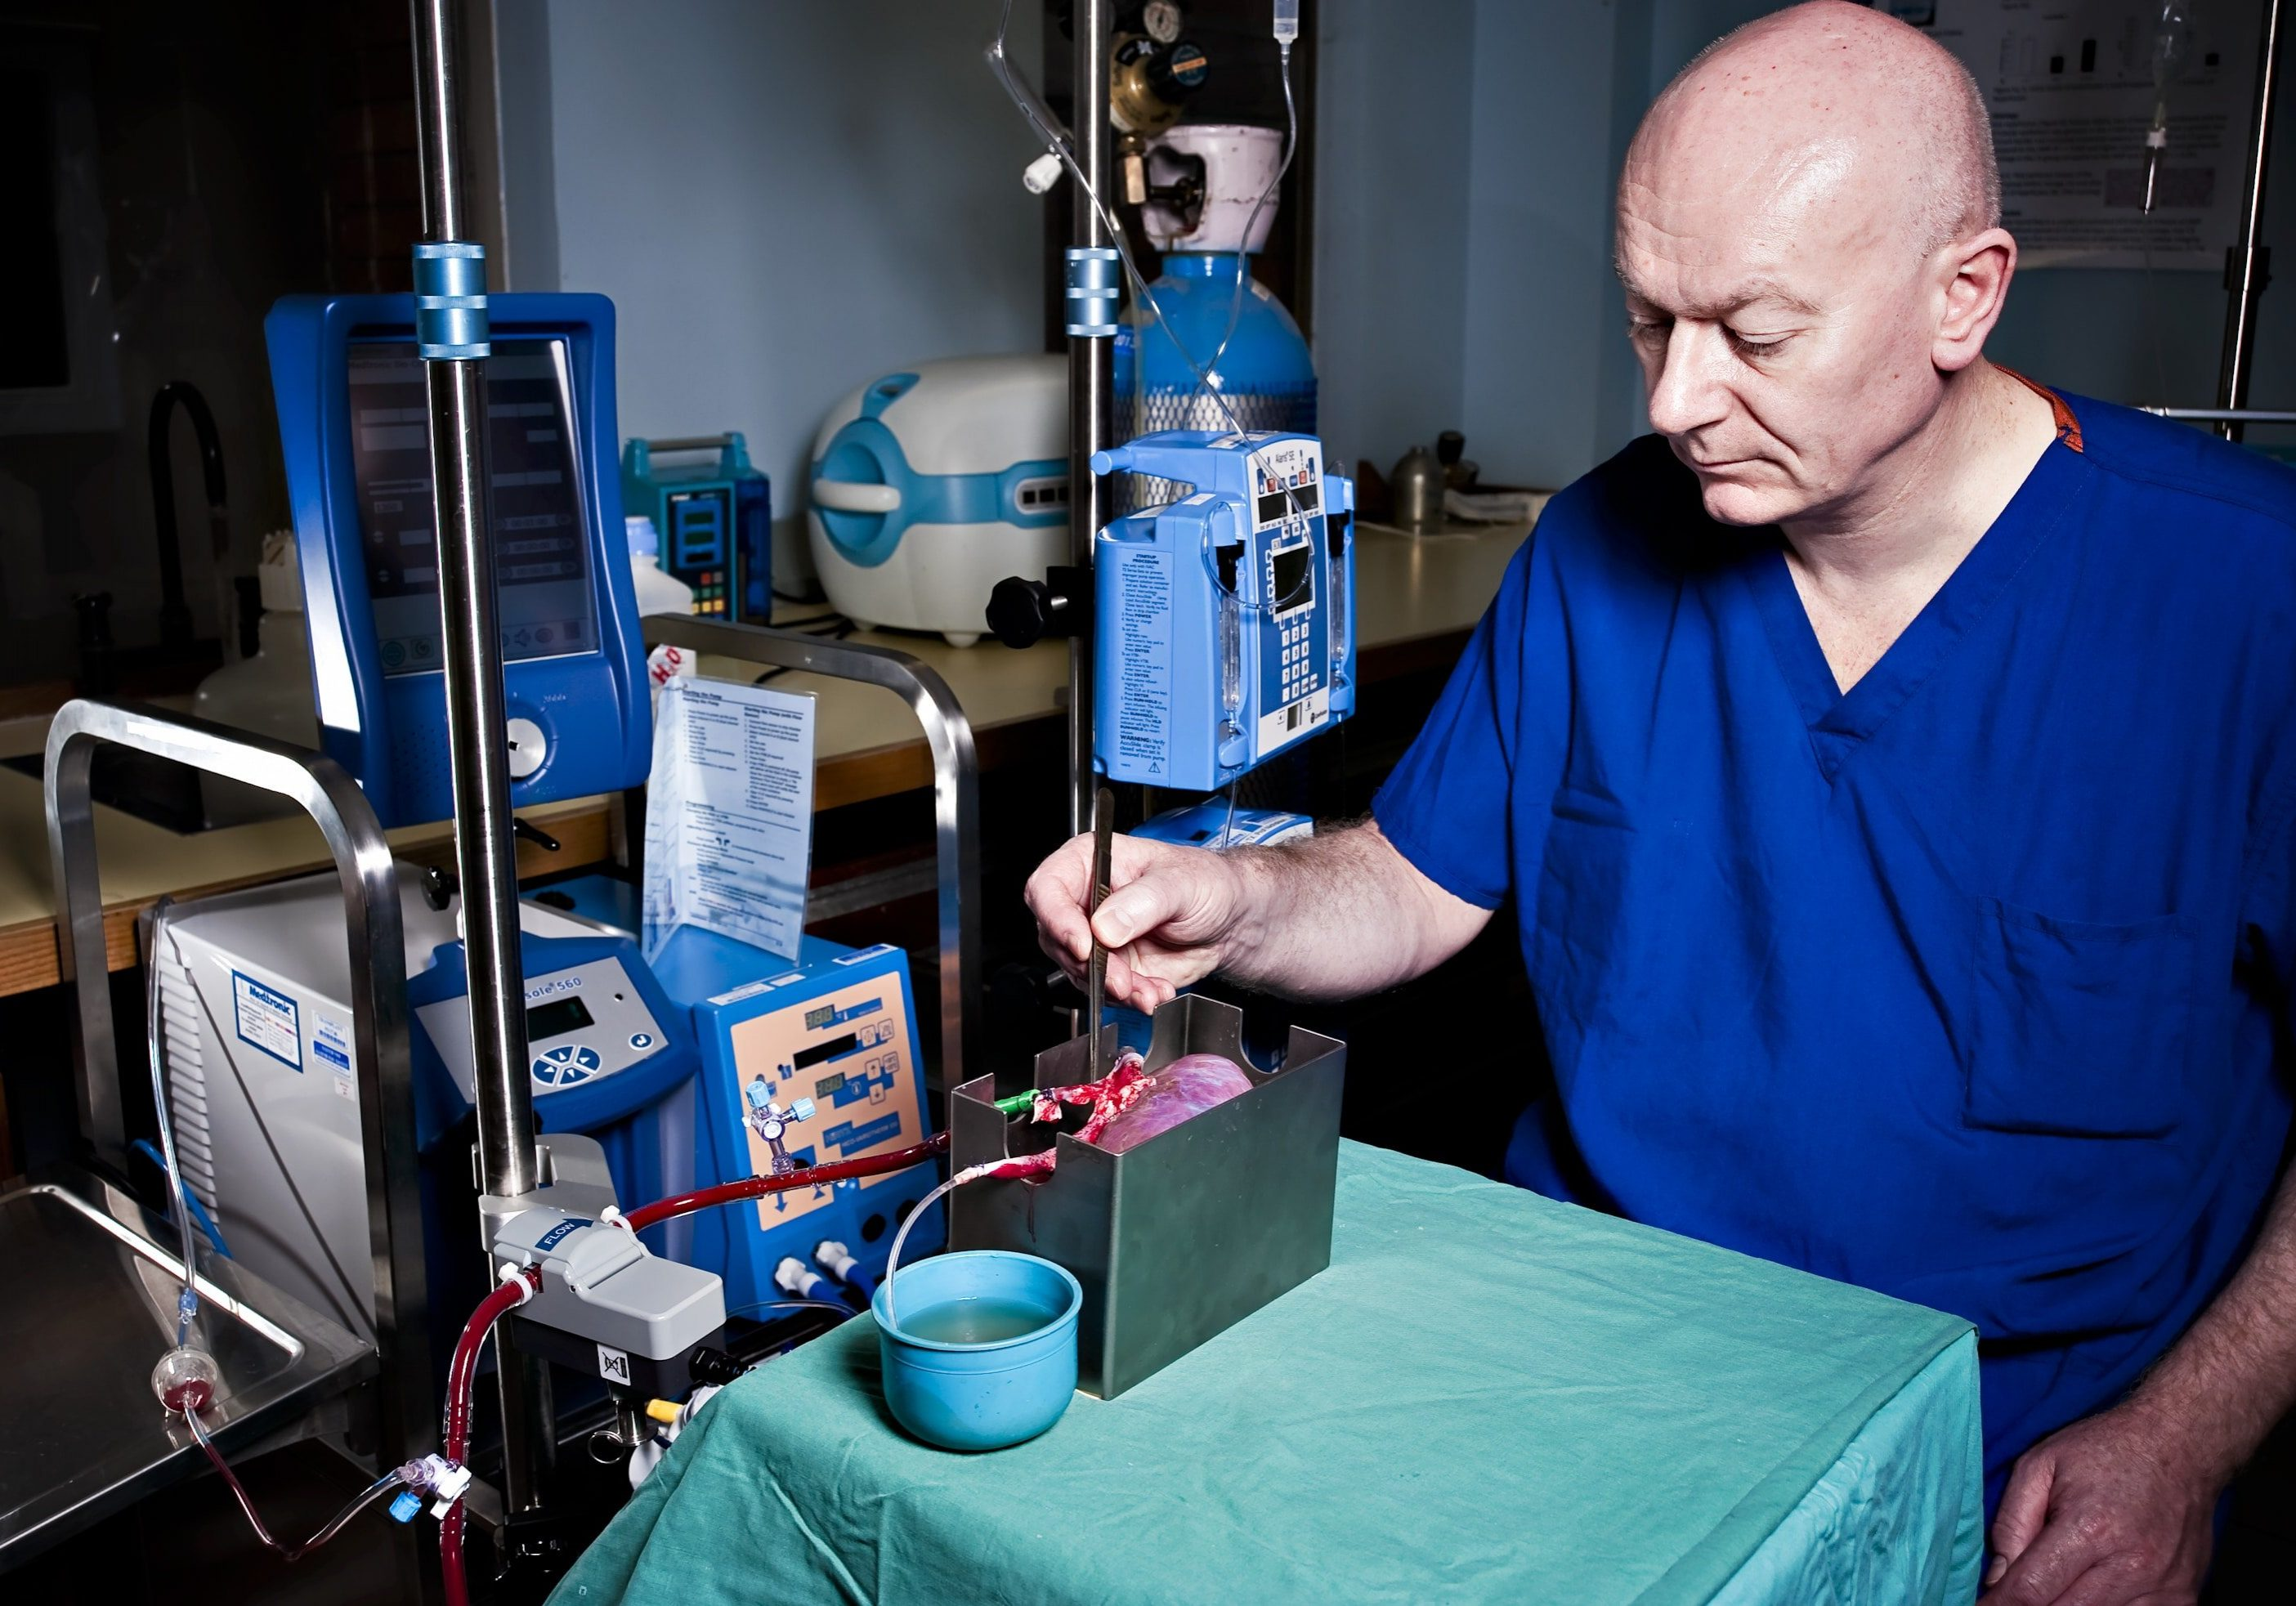 Mike Nicholson, Normothermic Perfusion